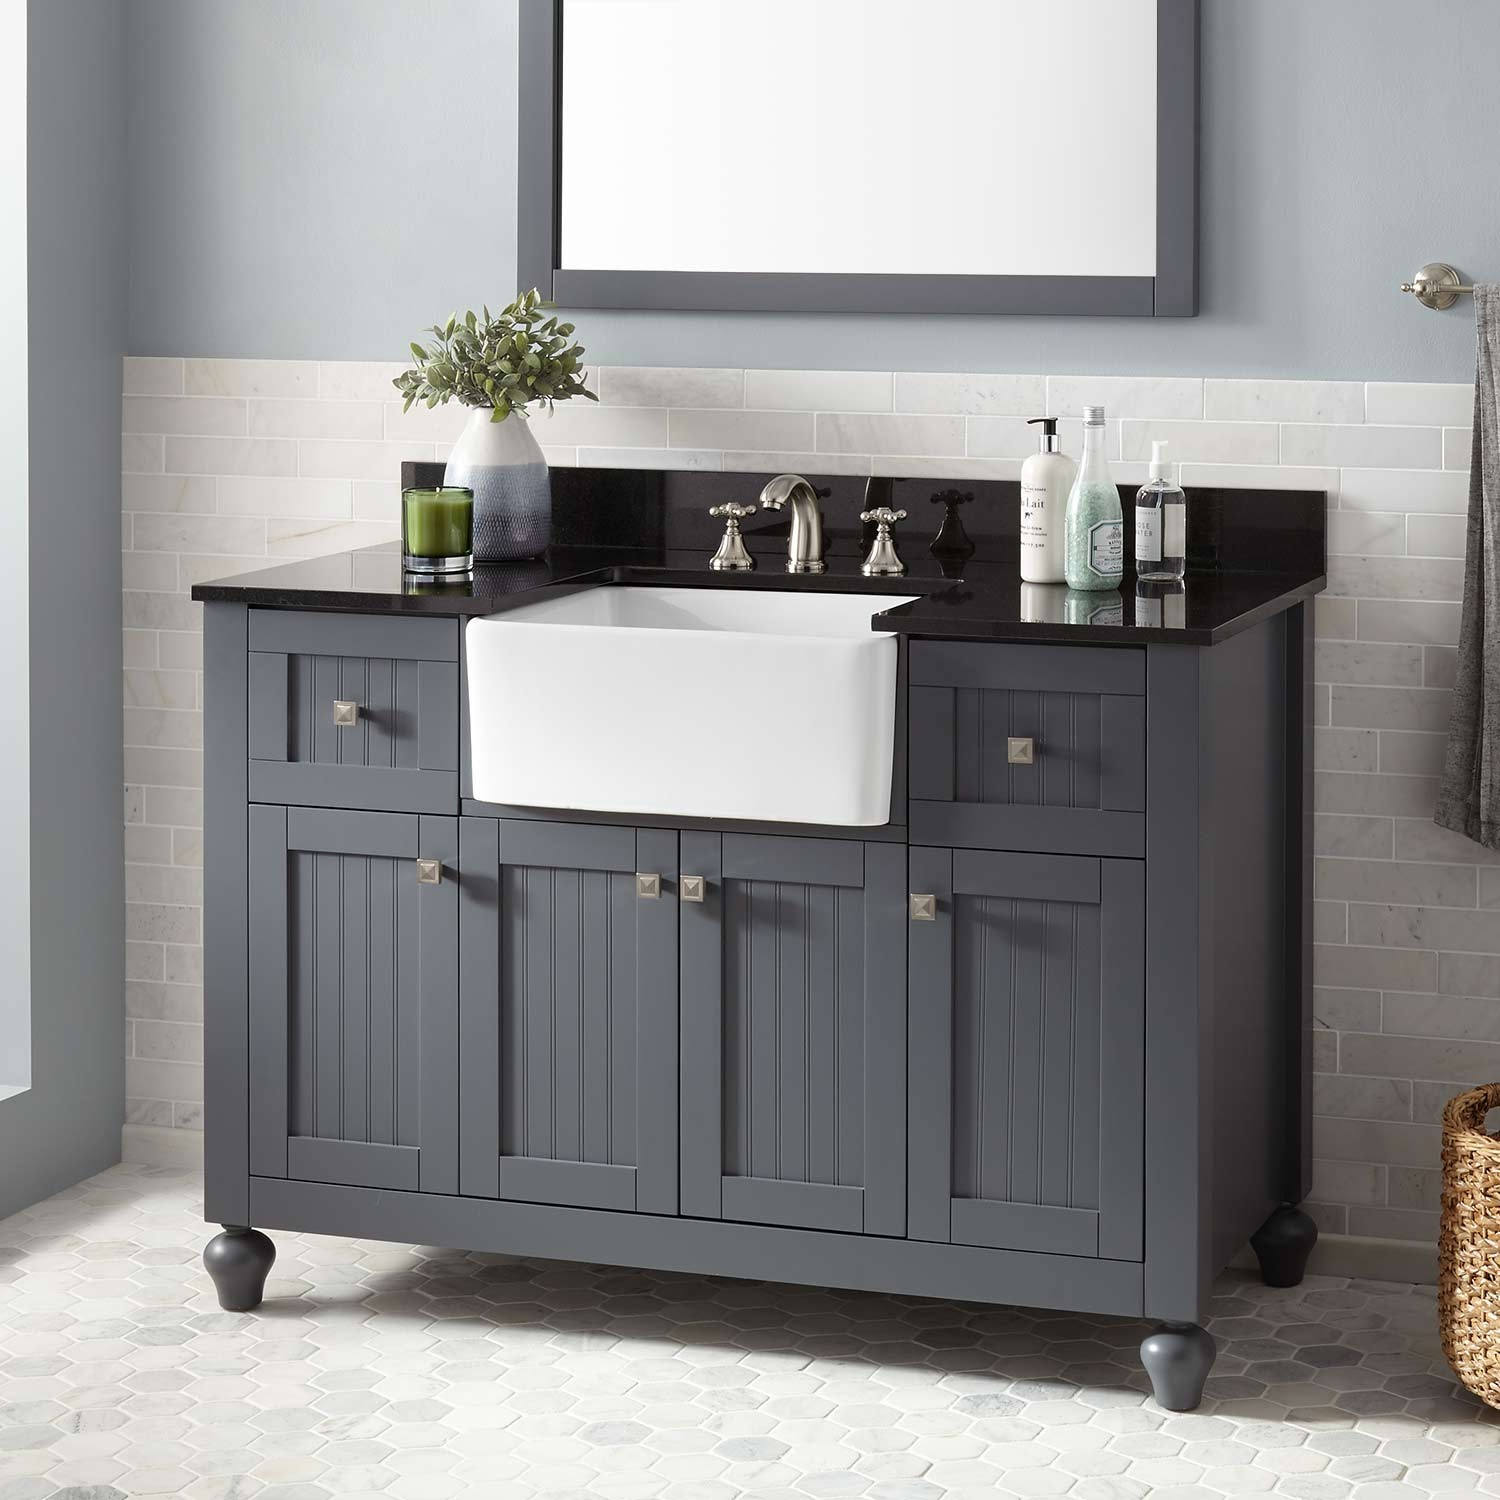 "Lovely 48"" Nellie Farmhouse Sink Vanity - Dark Gray - Bathroom throughout Bathroom Farm Sink Vanity"